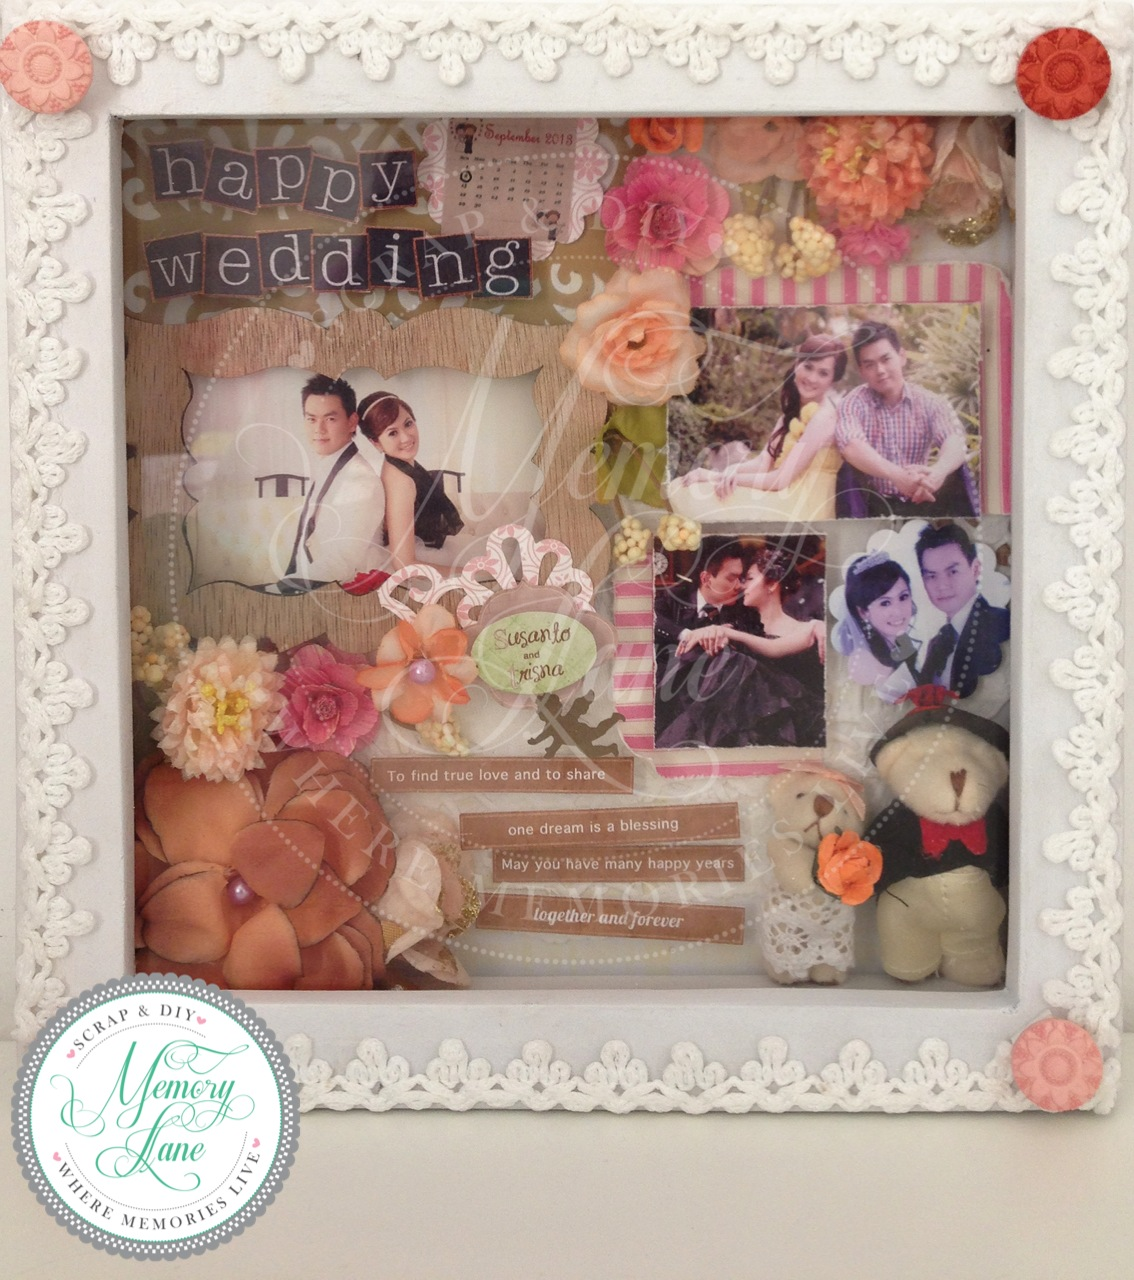 Wedding Gift Photo Frame: Blessed To Be A Blessing